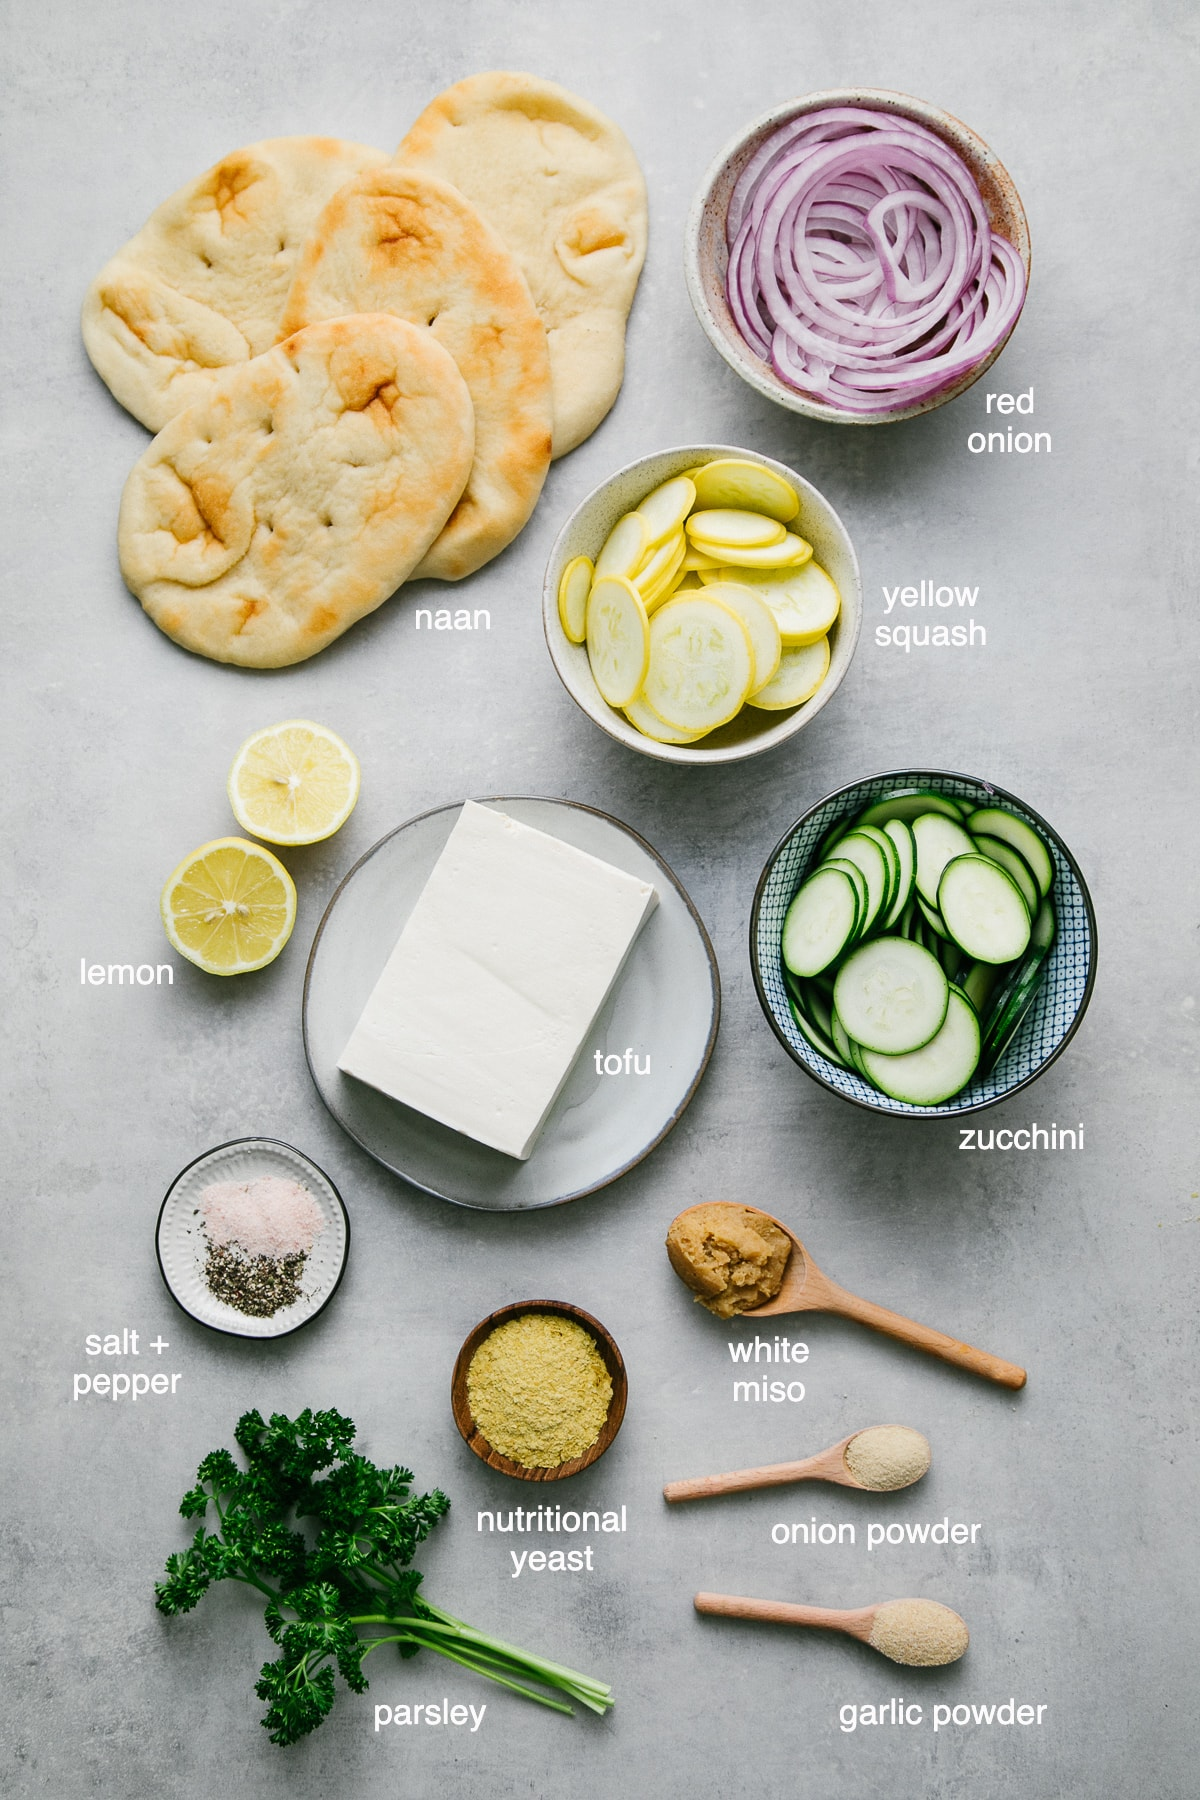 top down view of ingredients used to make zucchini flatbread vegan white pizza.